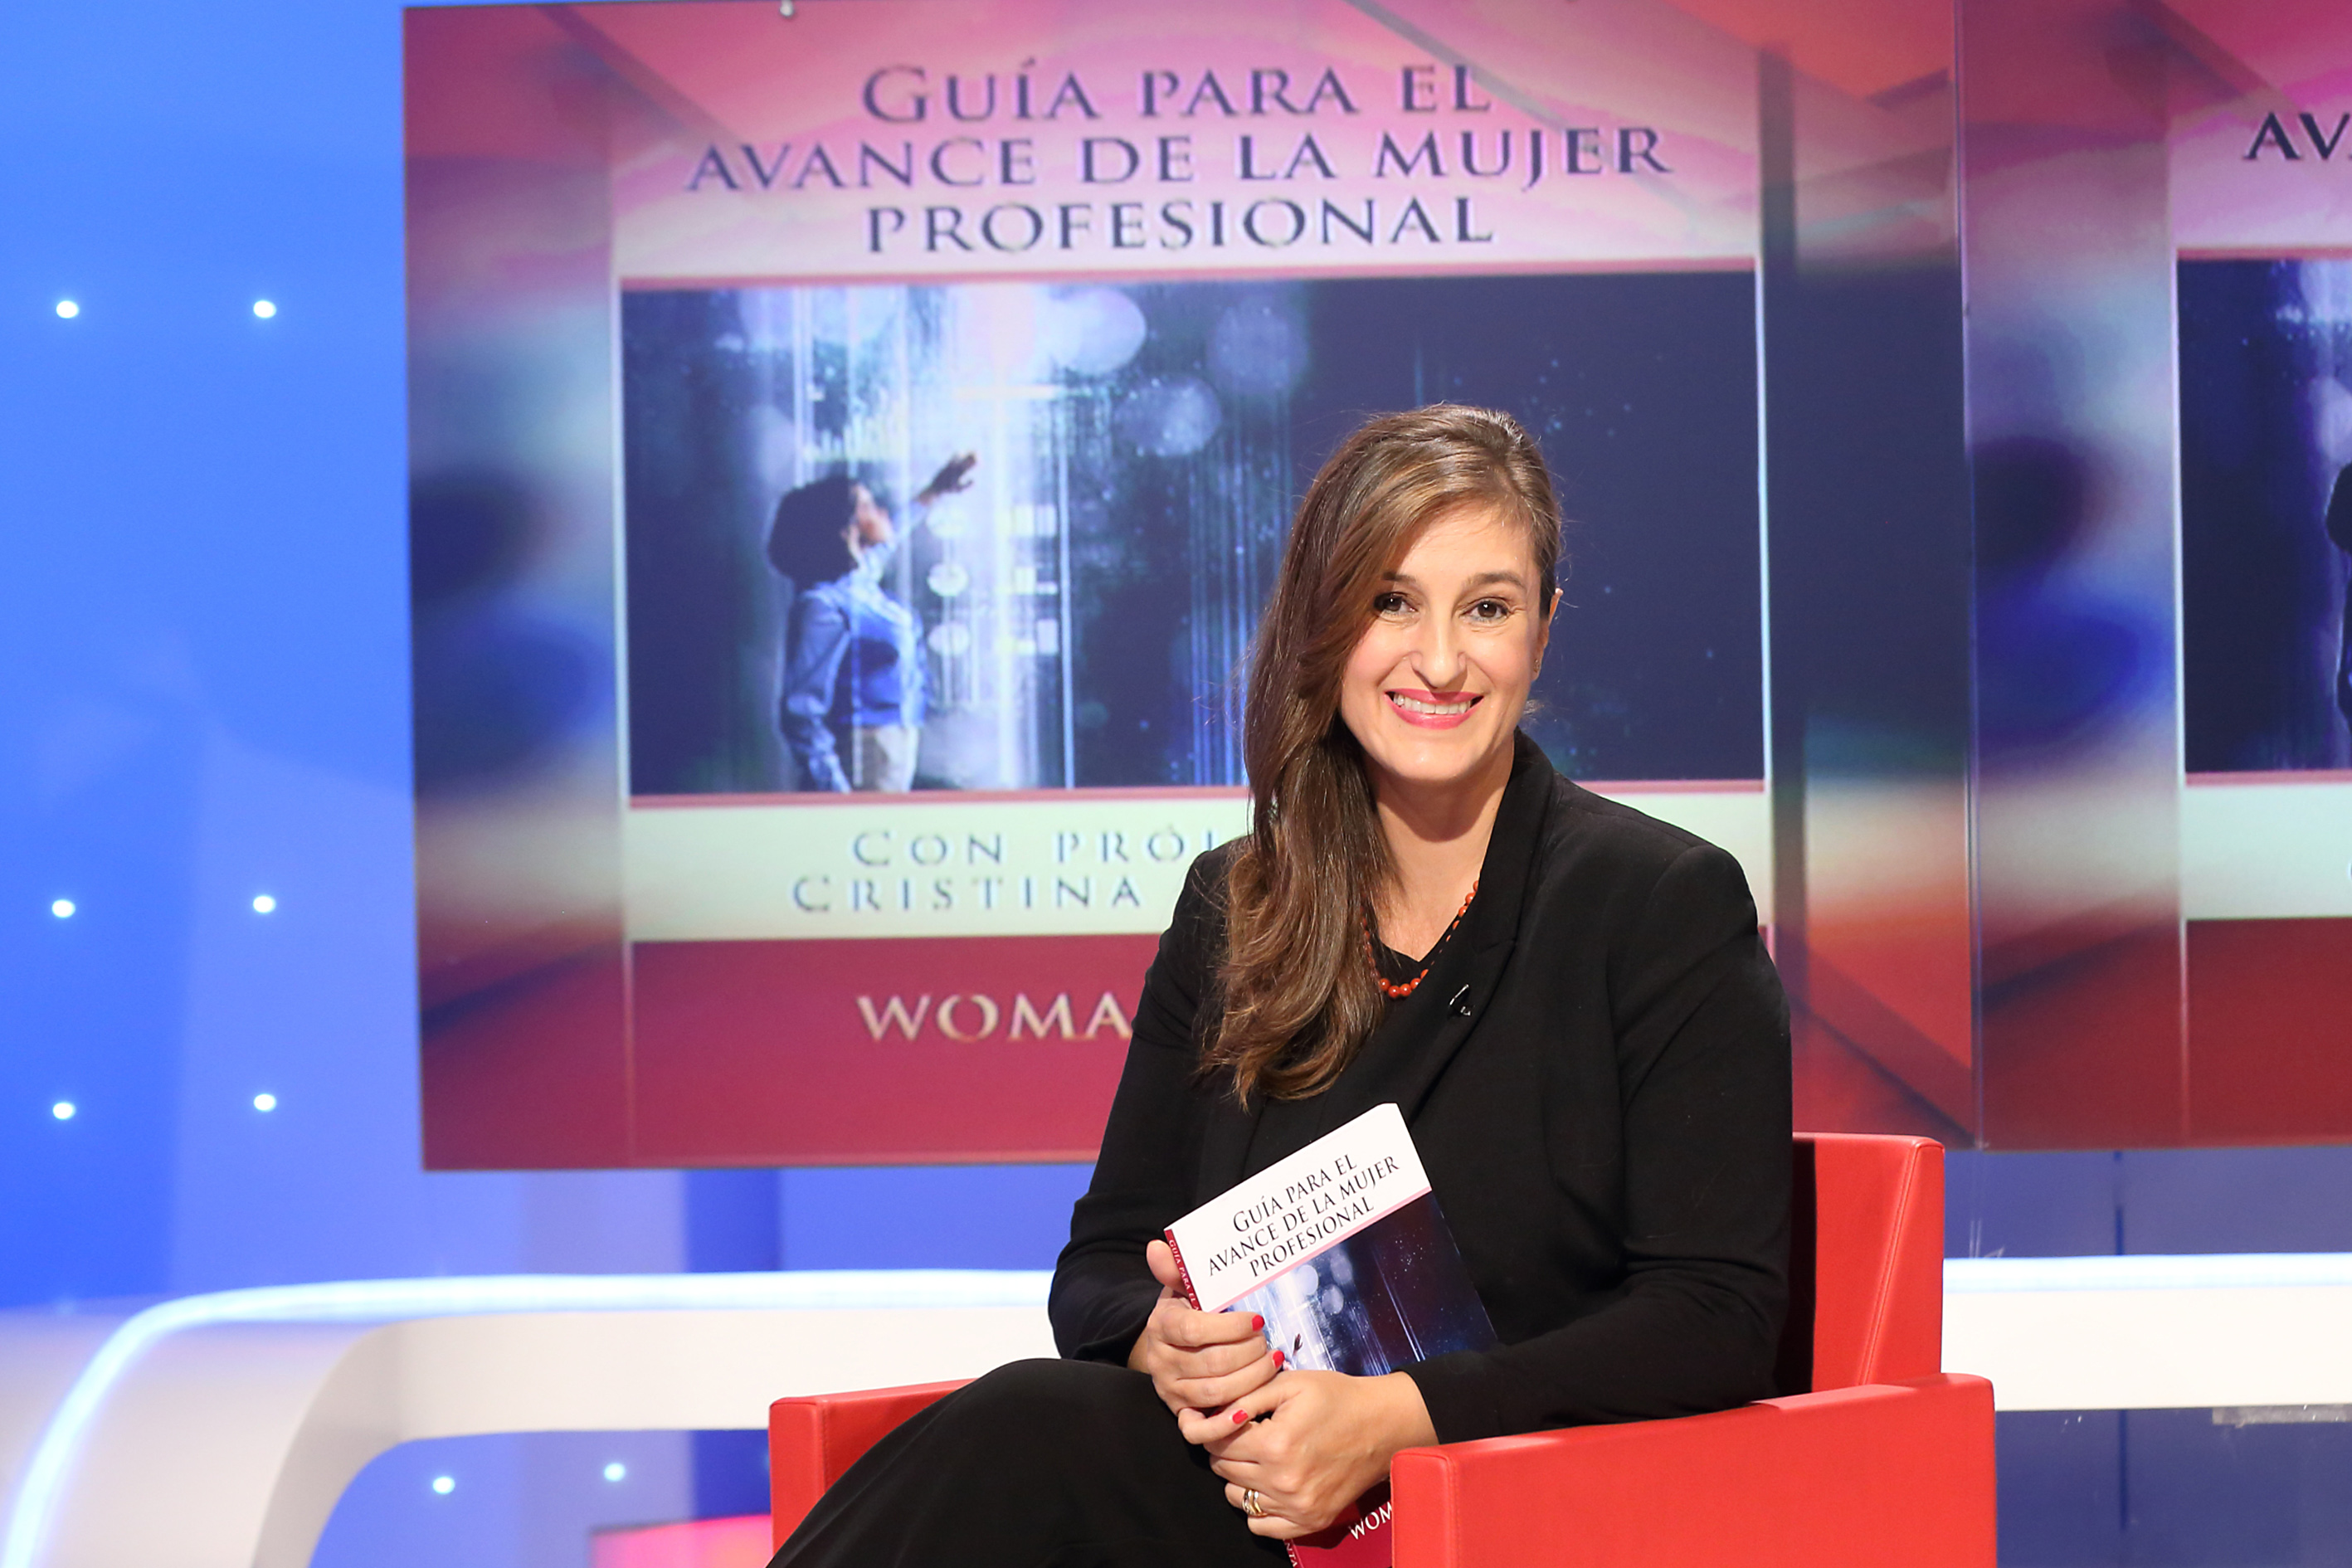 beatriz-recio-ceo-y-fundadora-de-womantalent-4